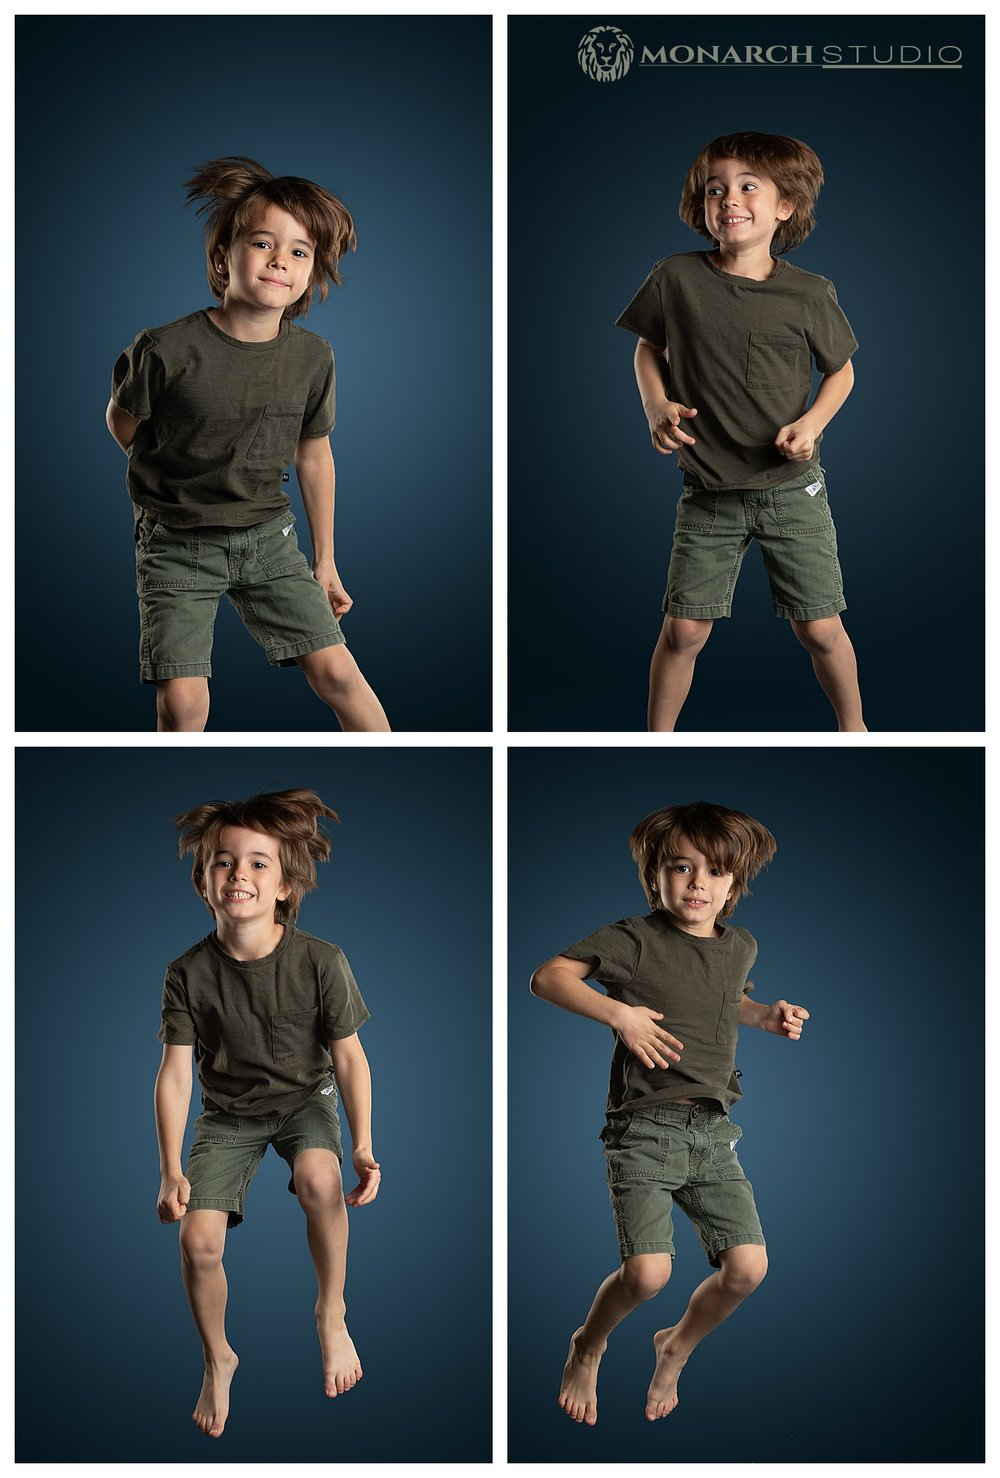 North Florida Kids Photography Studio - 009.JPG